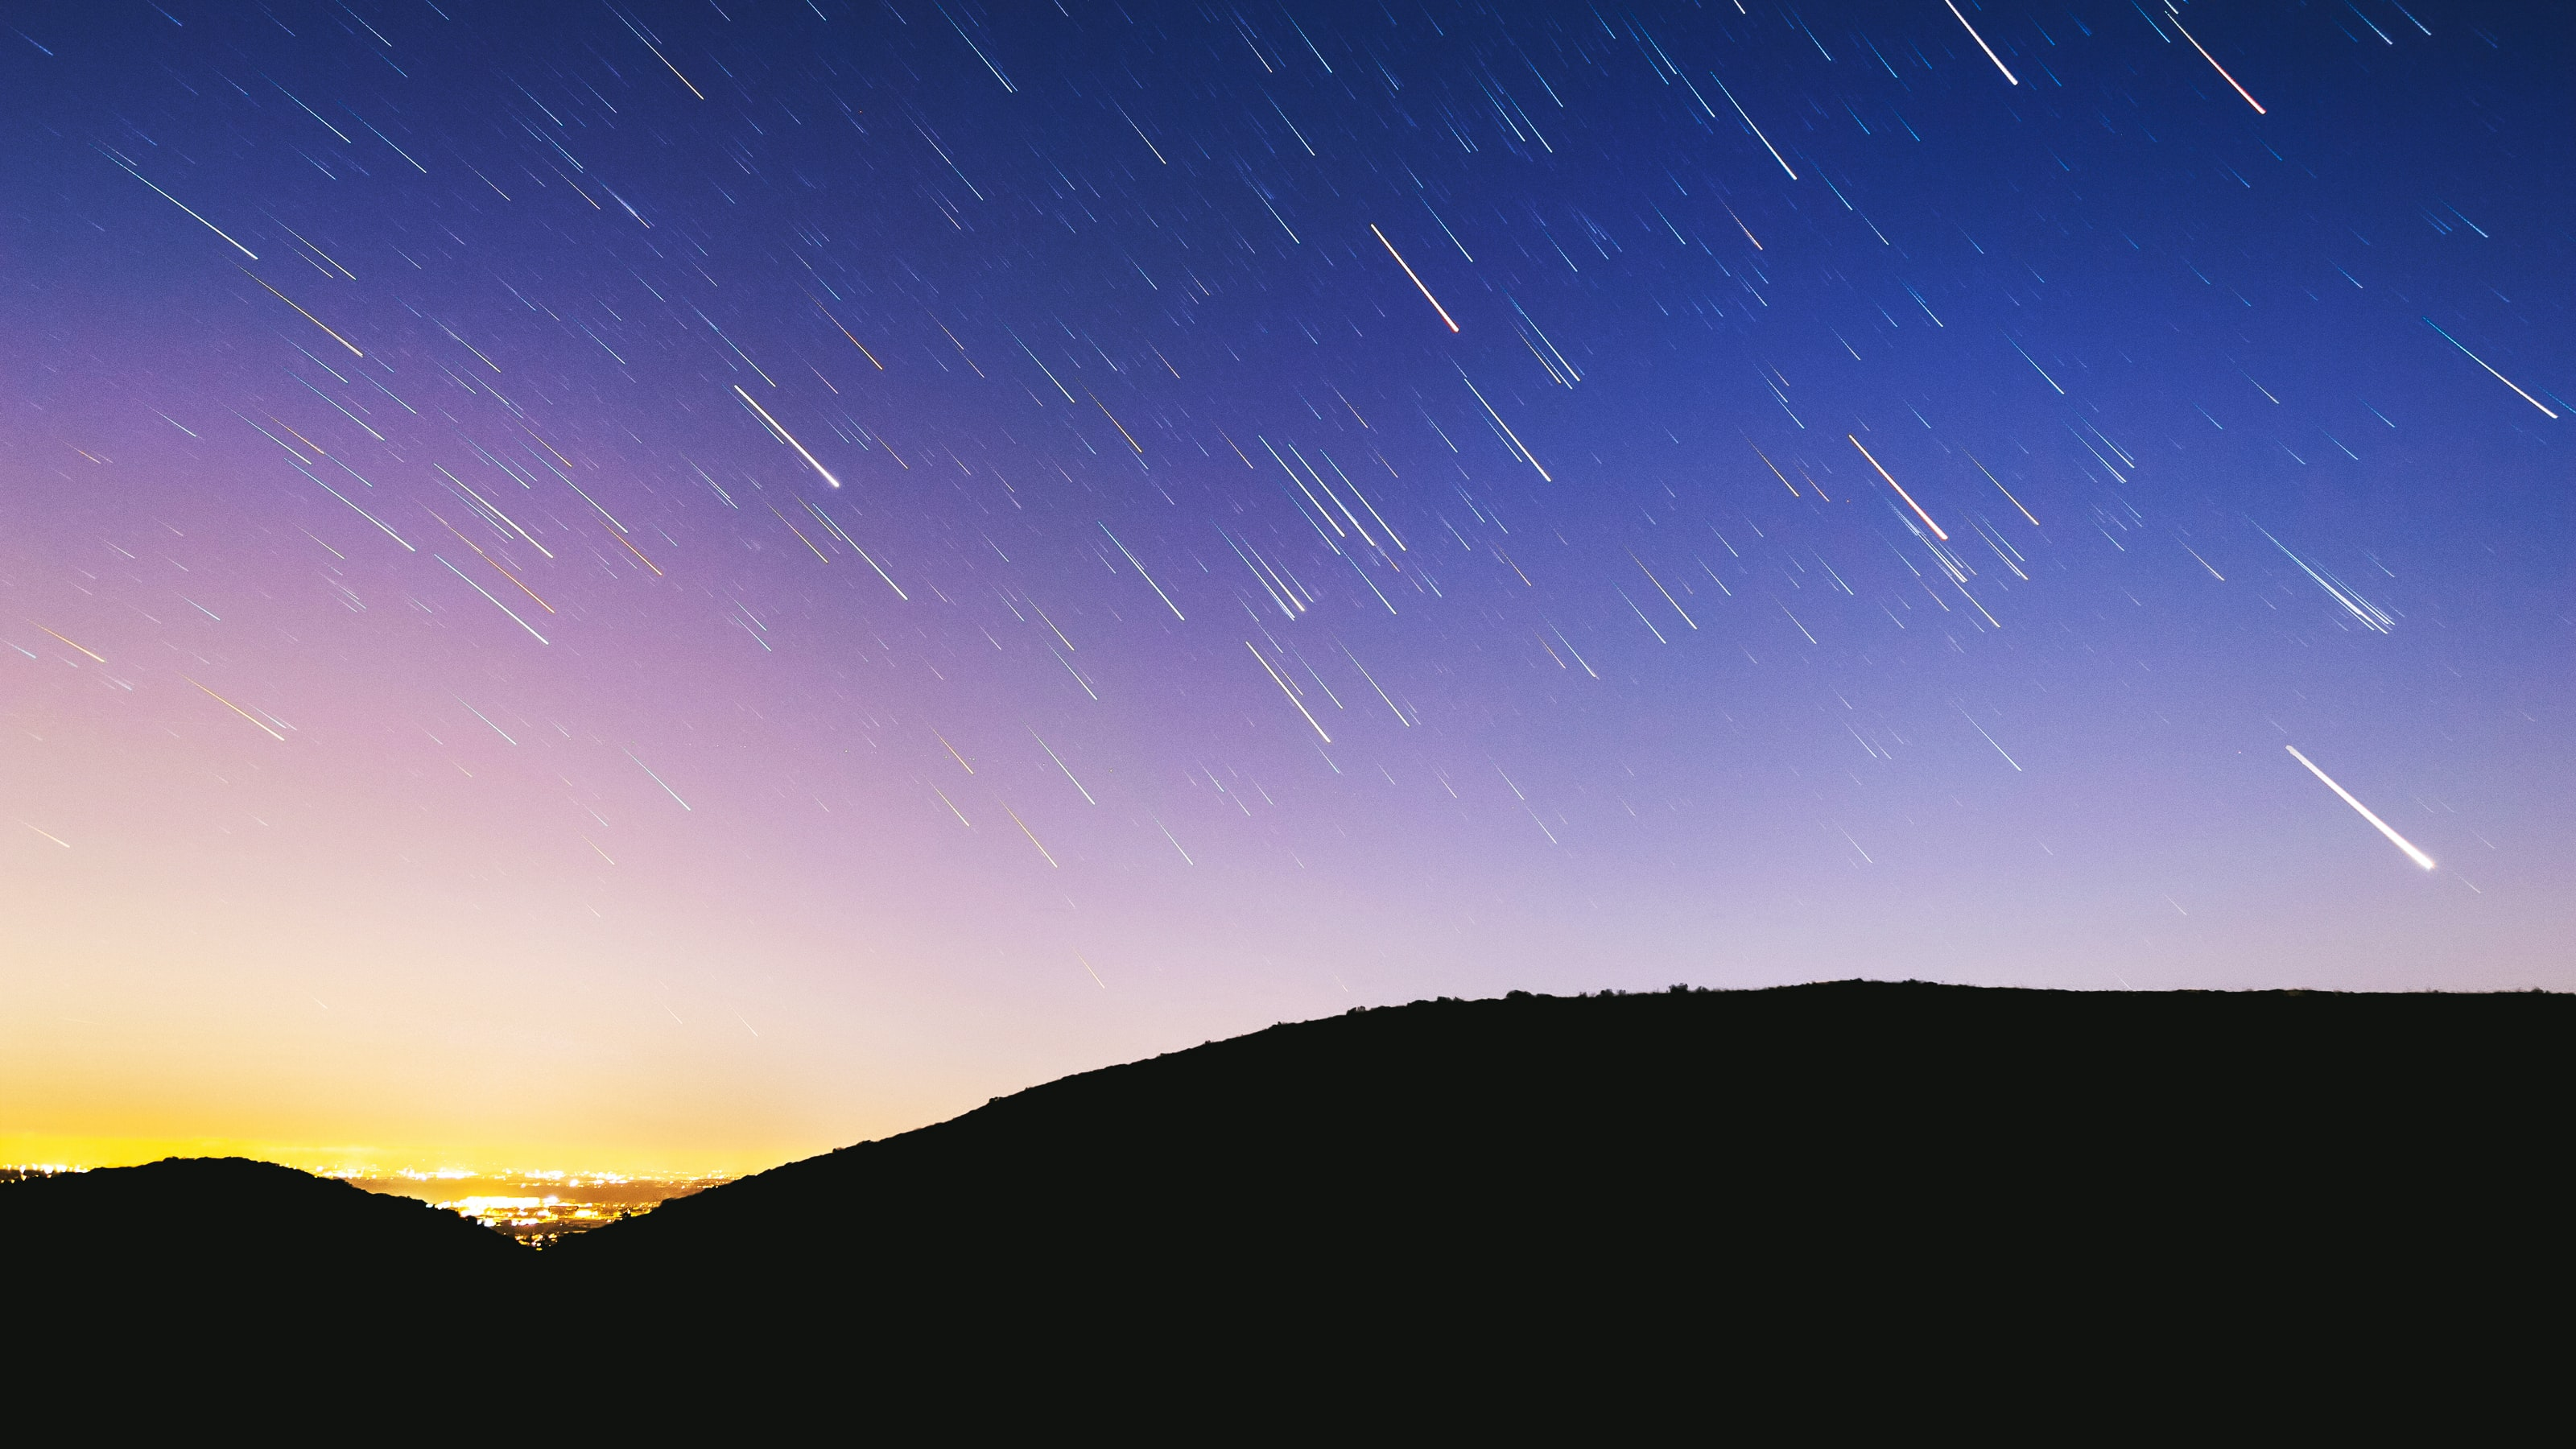 time lapse photography of shooting stars